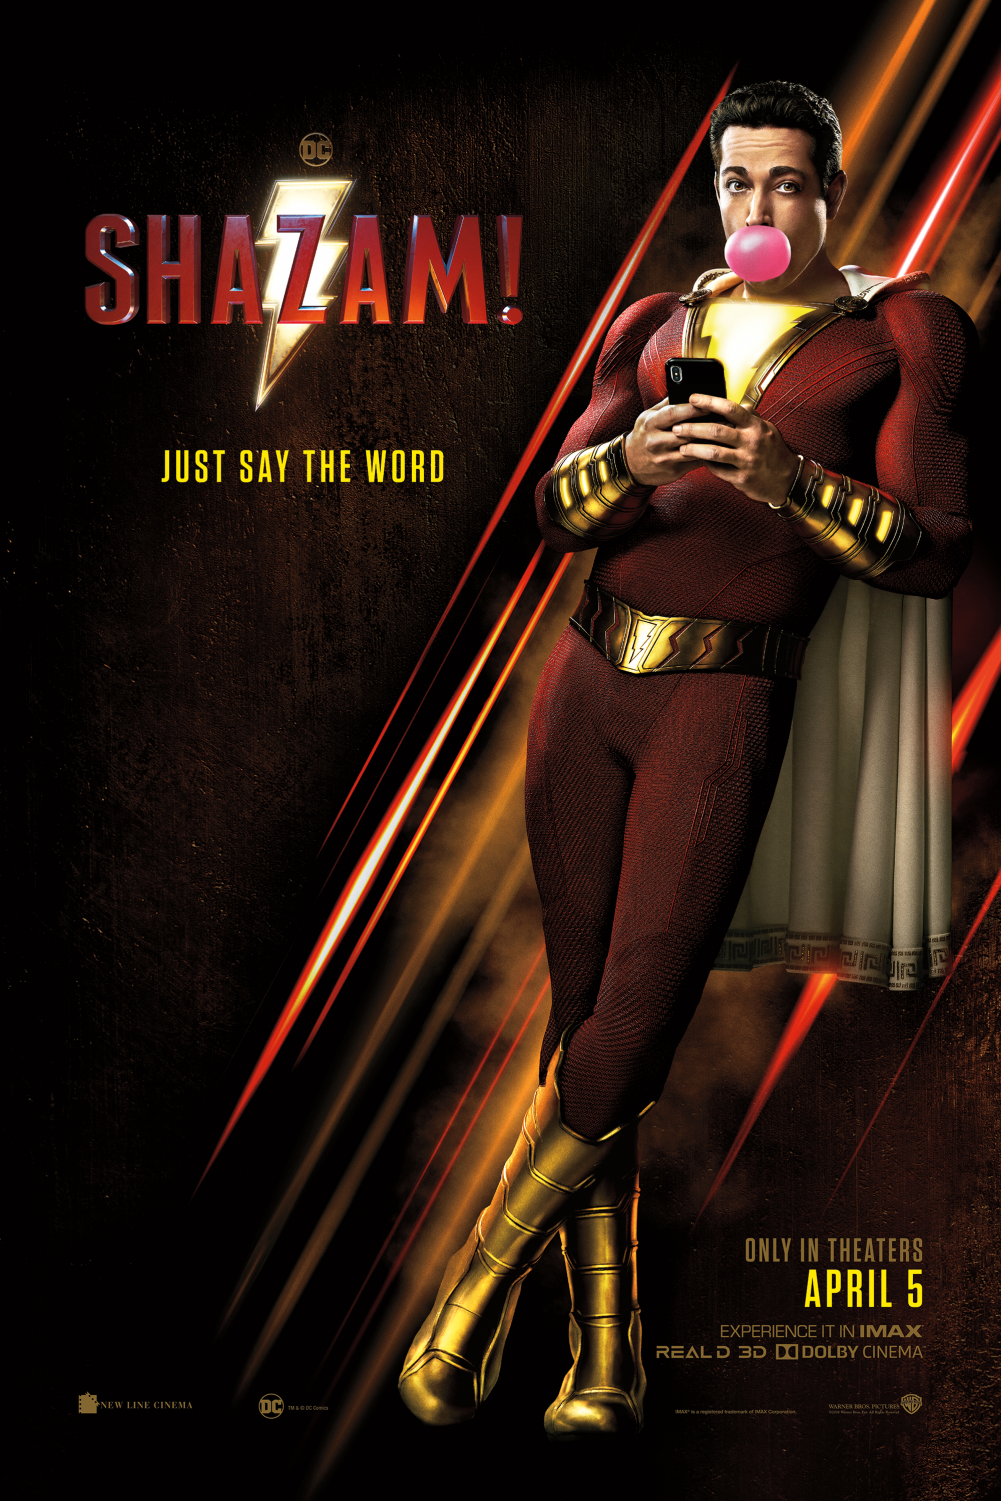 DC's poster for the movie, featuring Zachary Levi.